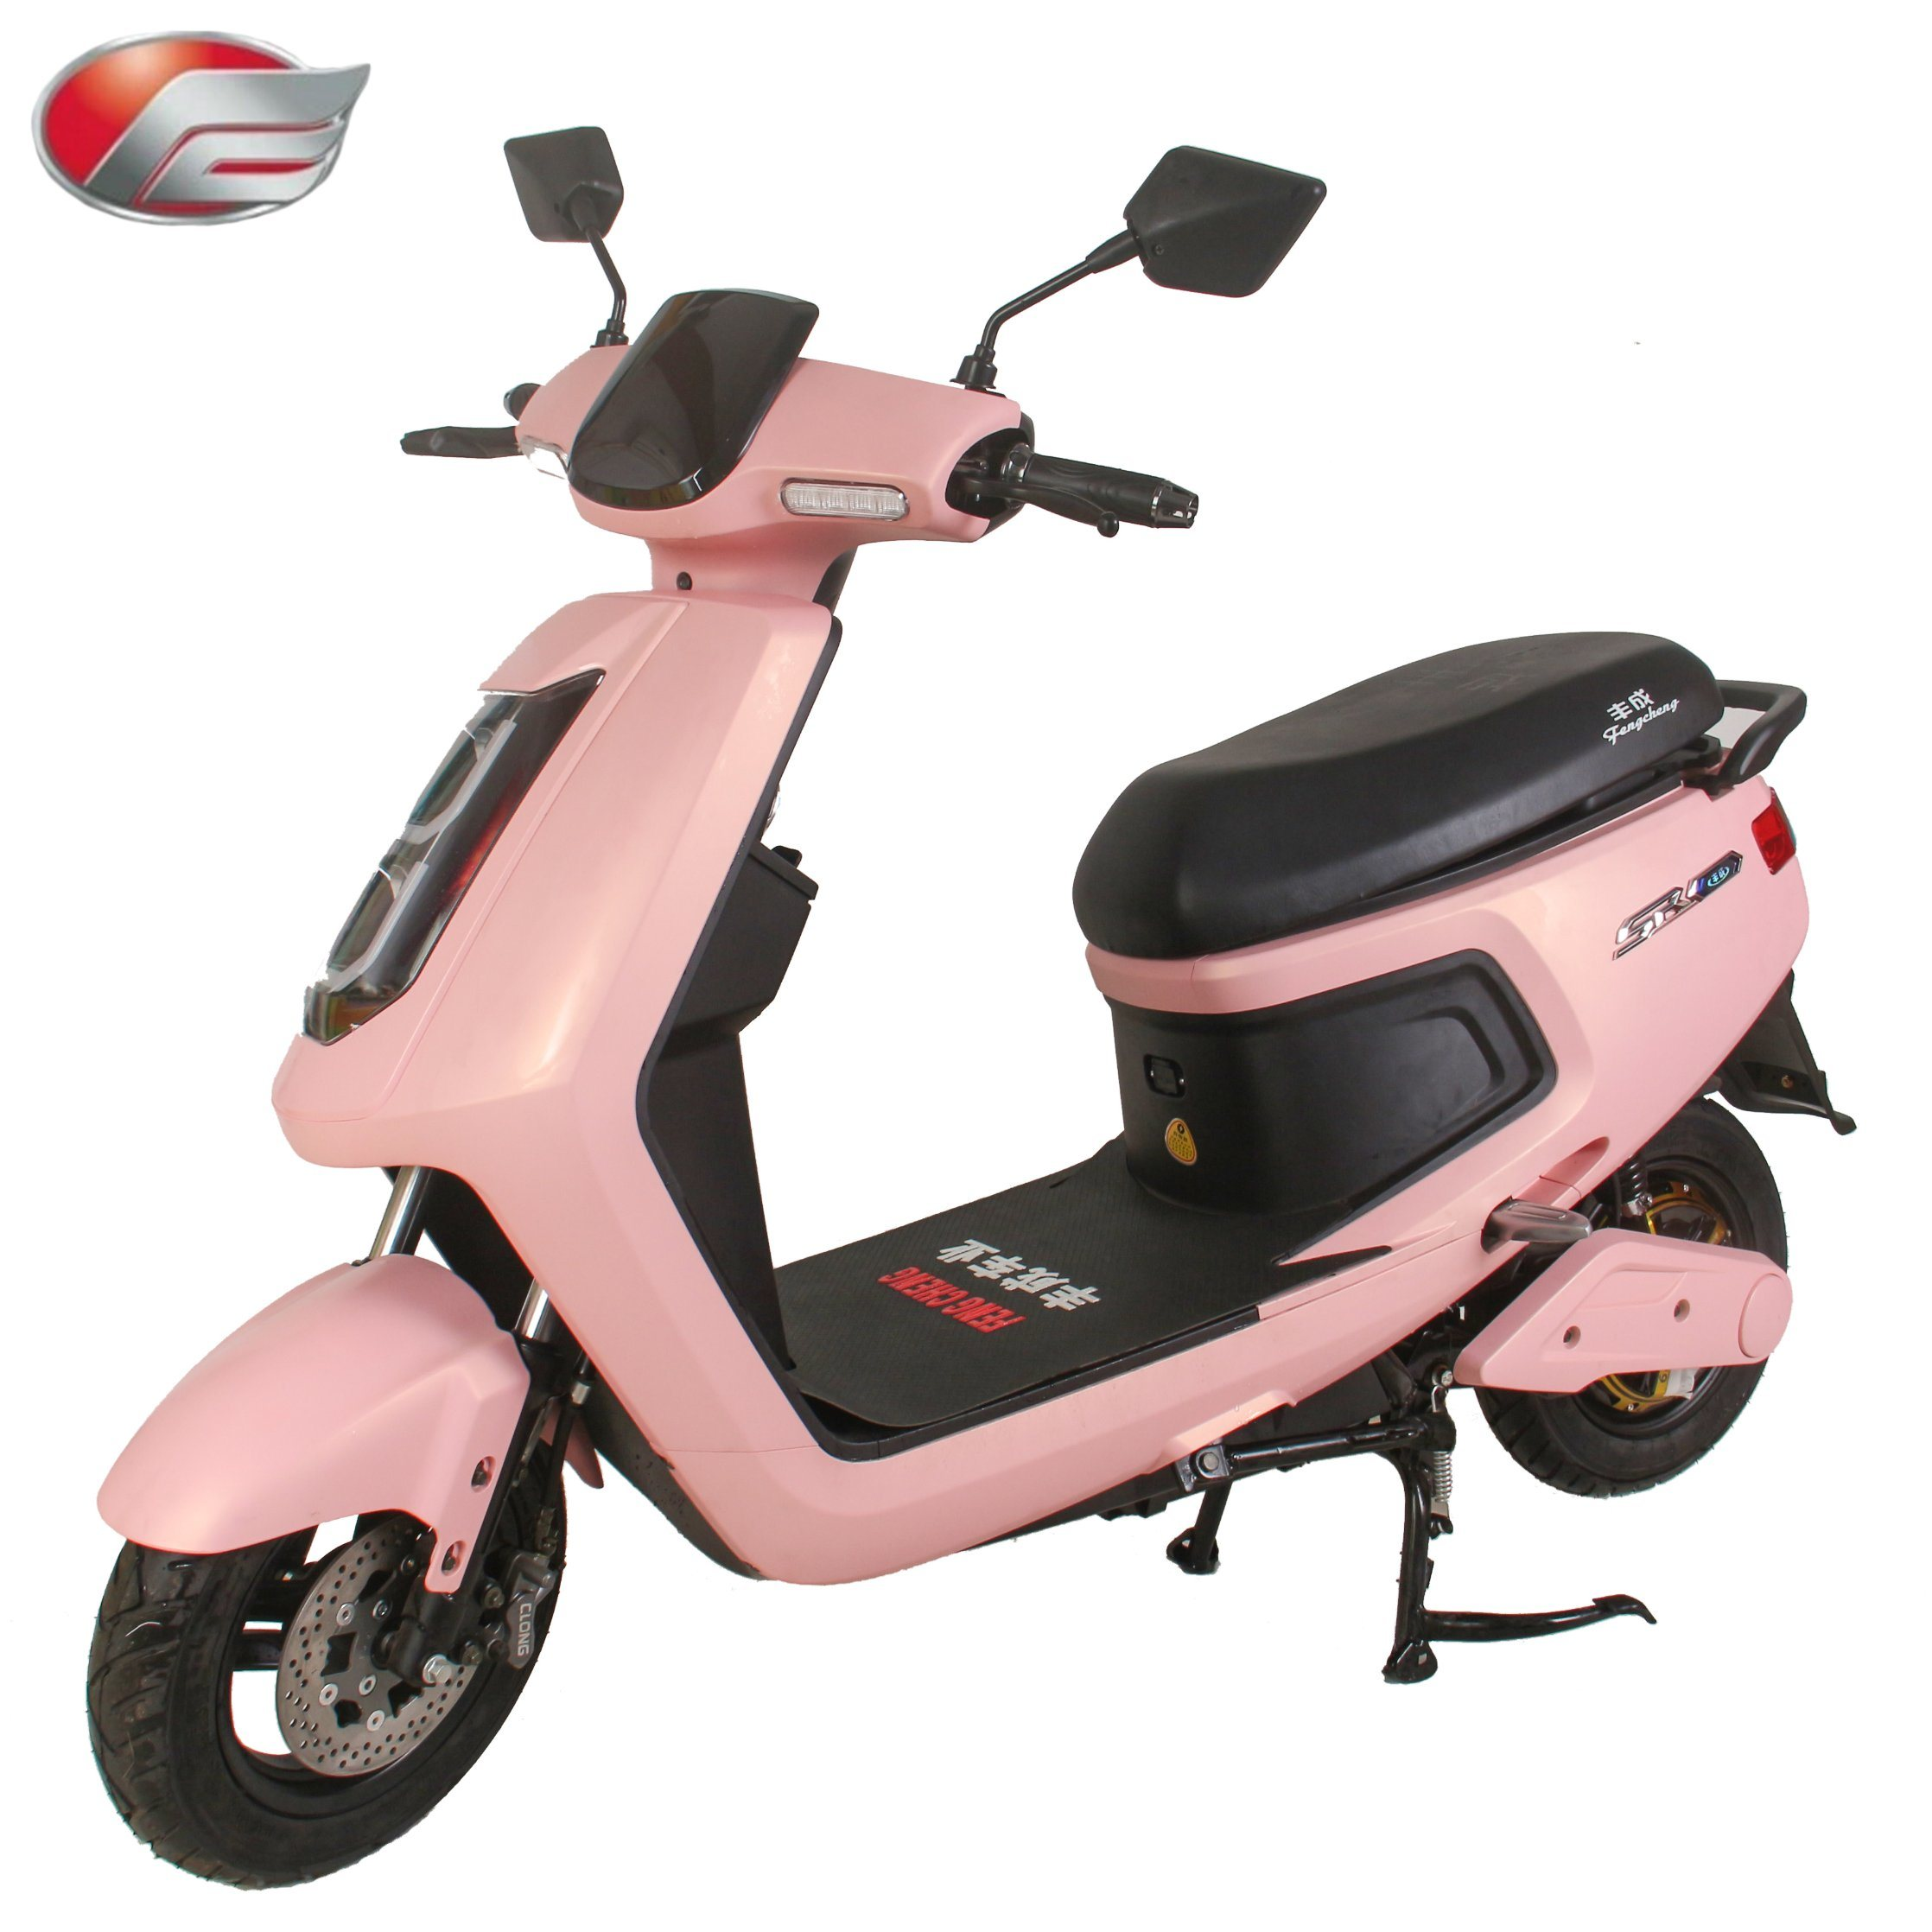 72v 1000w High Quality Electric Scooter For Sale Made In China China E Scooter Motor Scooter